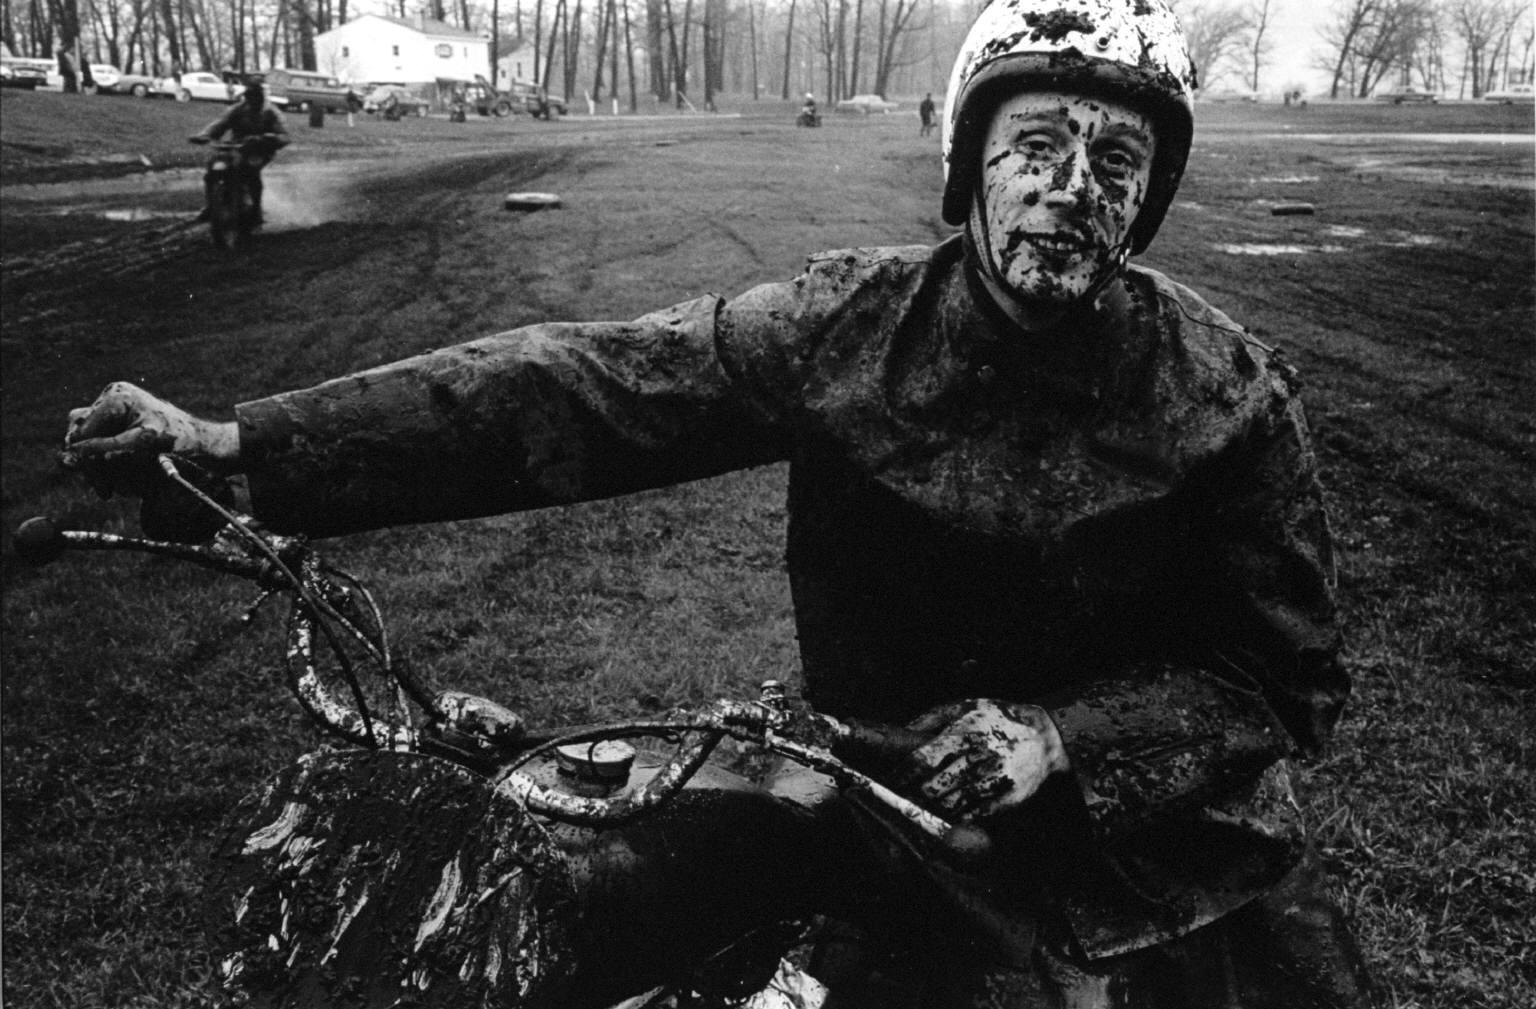 from The Bikeriders by Danny Lyon